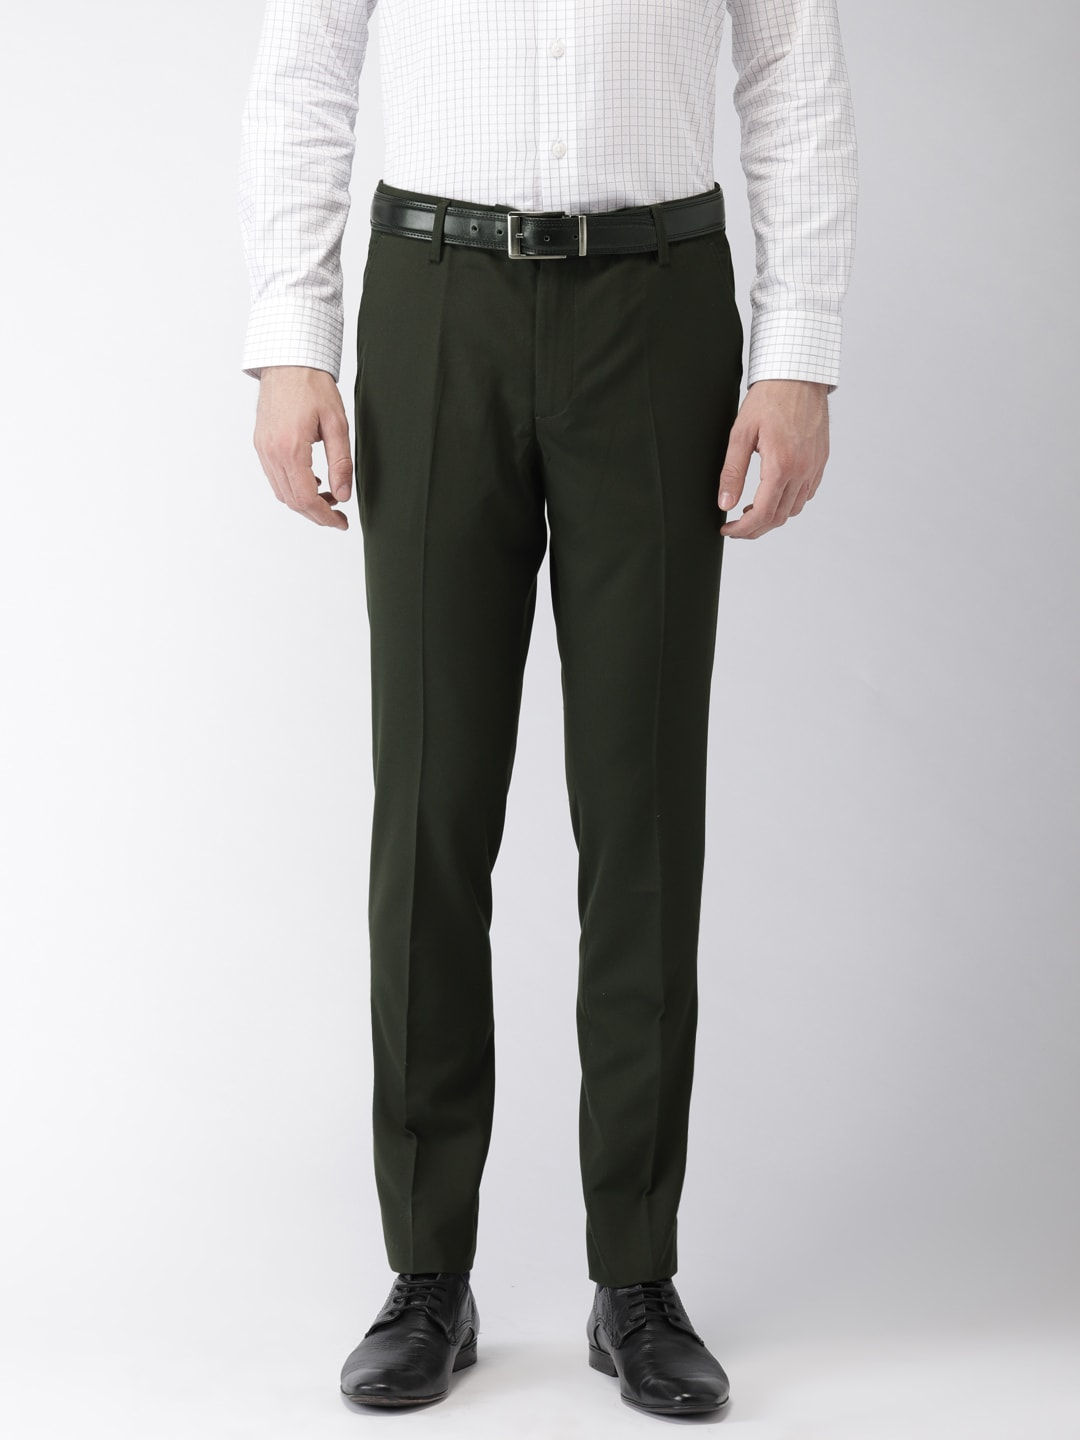 bfc4932d9 Black Coffee Formal Trousers - Buy Black Coffee Formal Trousers online in  India